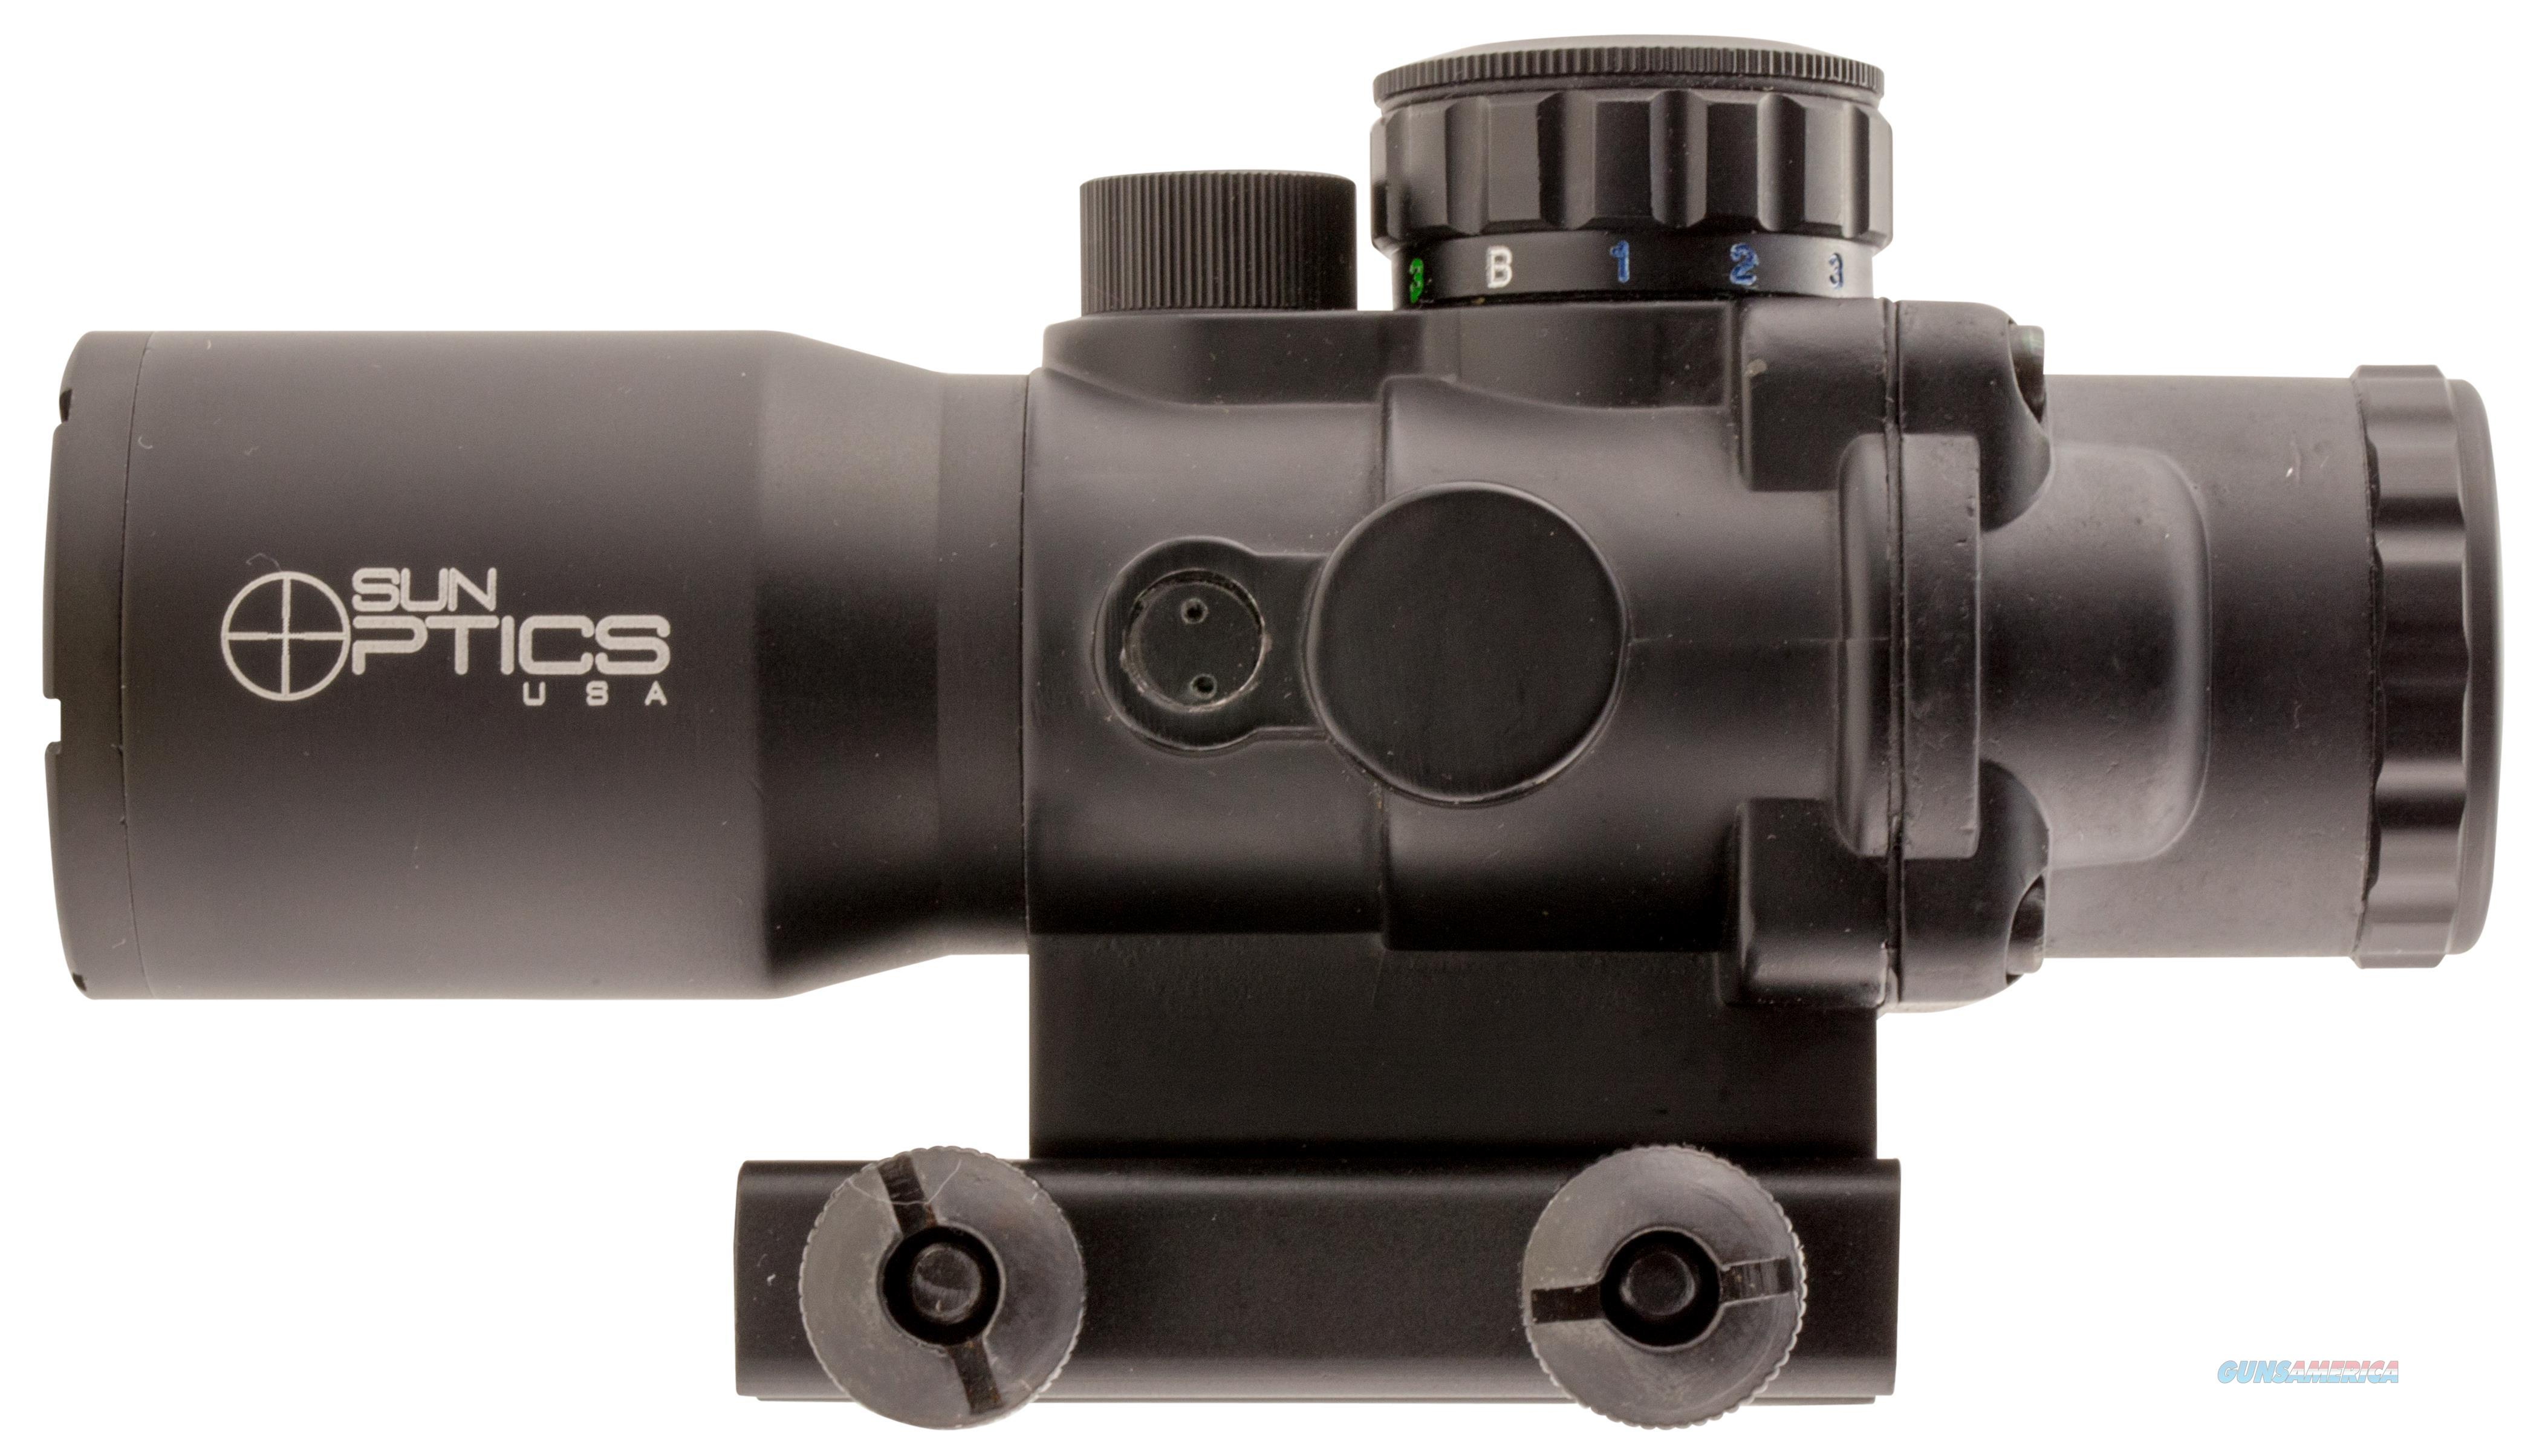 Sun Optics Ps30432ir Tactical Precision 4X 32Mm Obj 20 Ft @ 100 Yds Fov Black Matte Illuminated Mil-Dot, 3 Color PS30432IR  Non-Guns > Scopes/Mounts/Rings & Optics > Mounts > Other